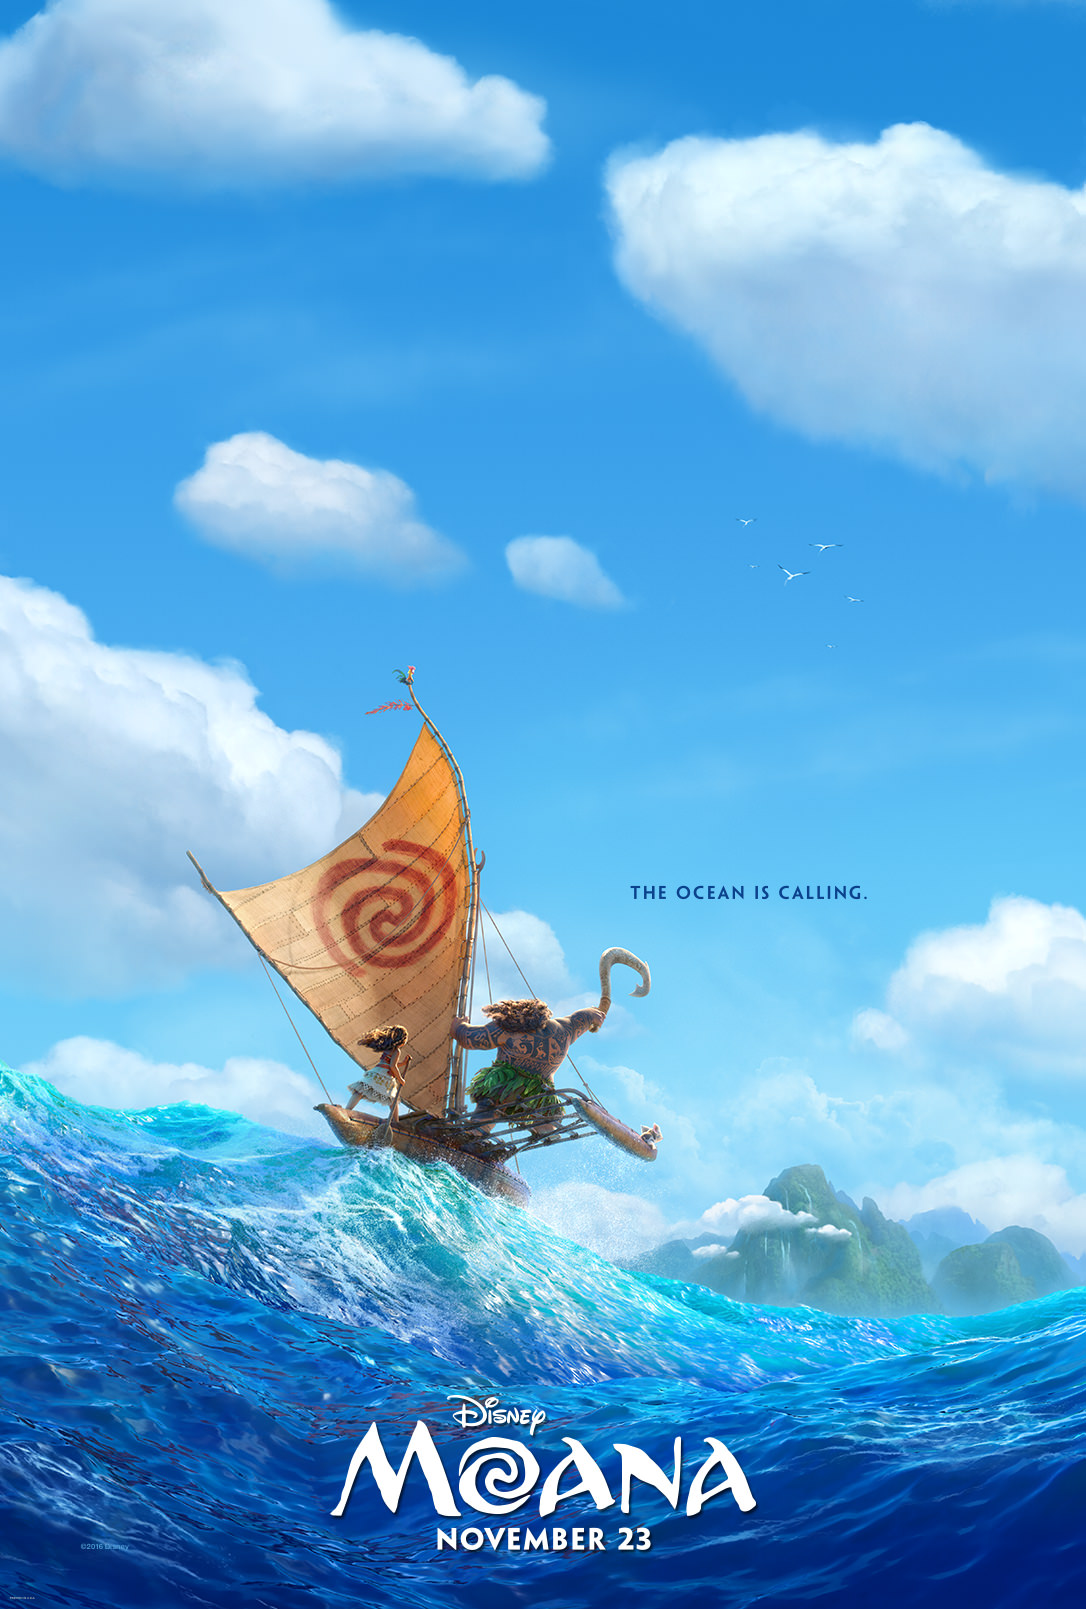 The next Disney blockbuster is releasing soon, and kids everywhere are OVER THE MOON. Here are 10 Moana Family Activities to do before seeing the film!